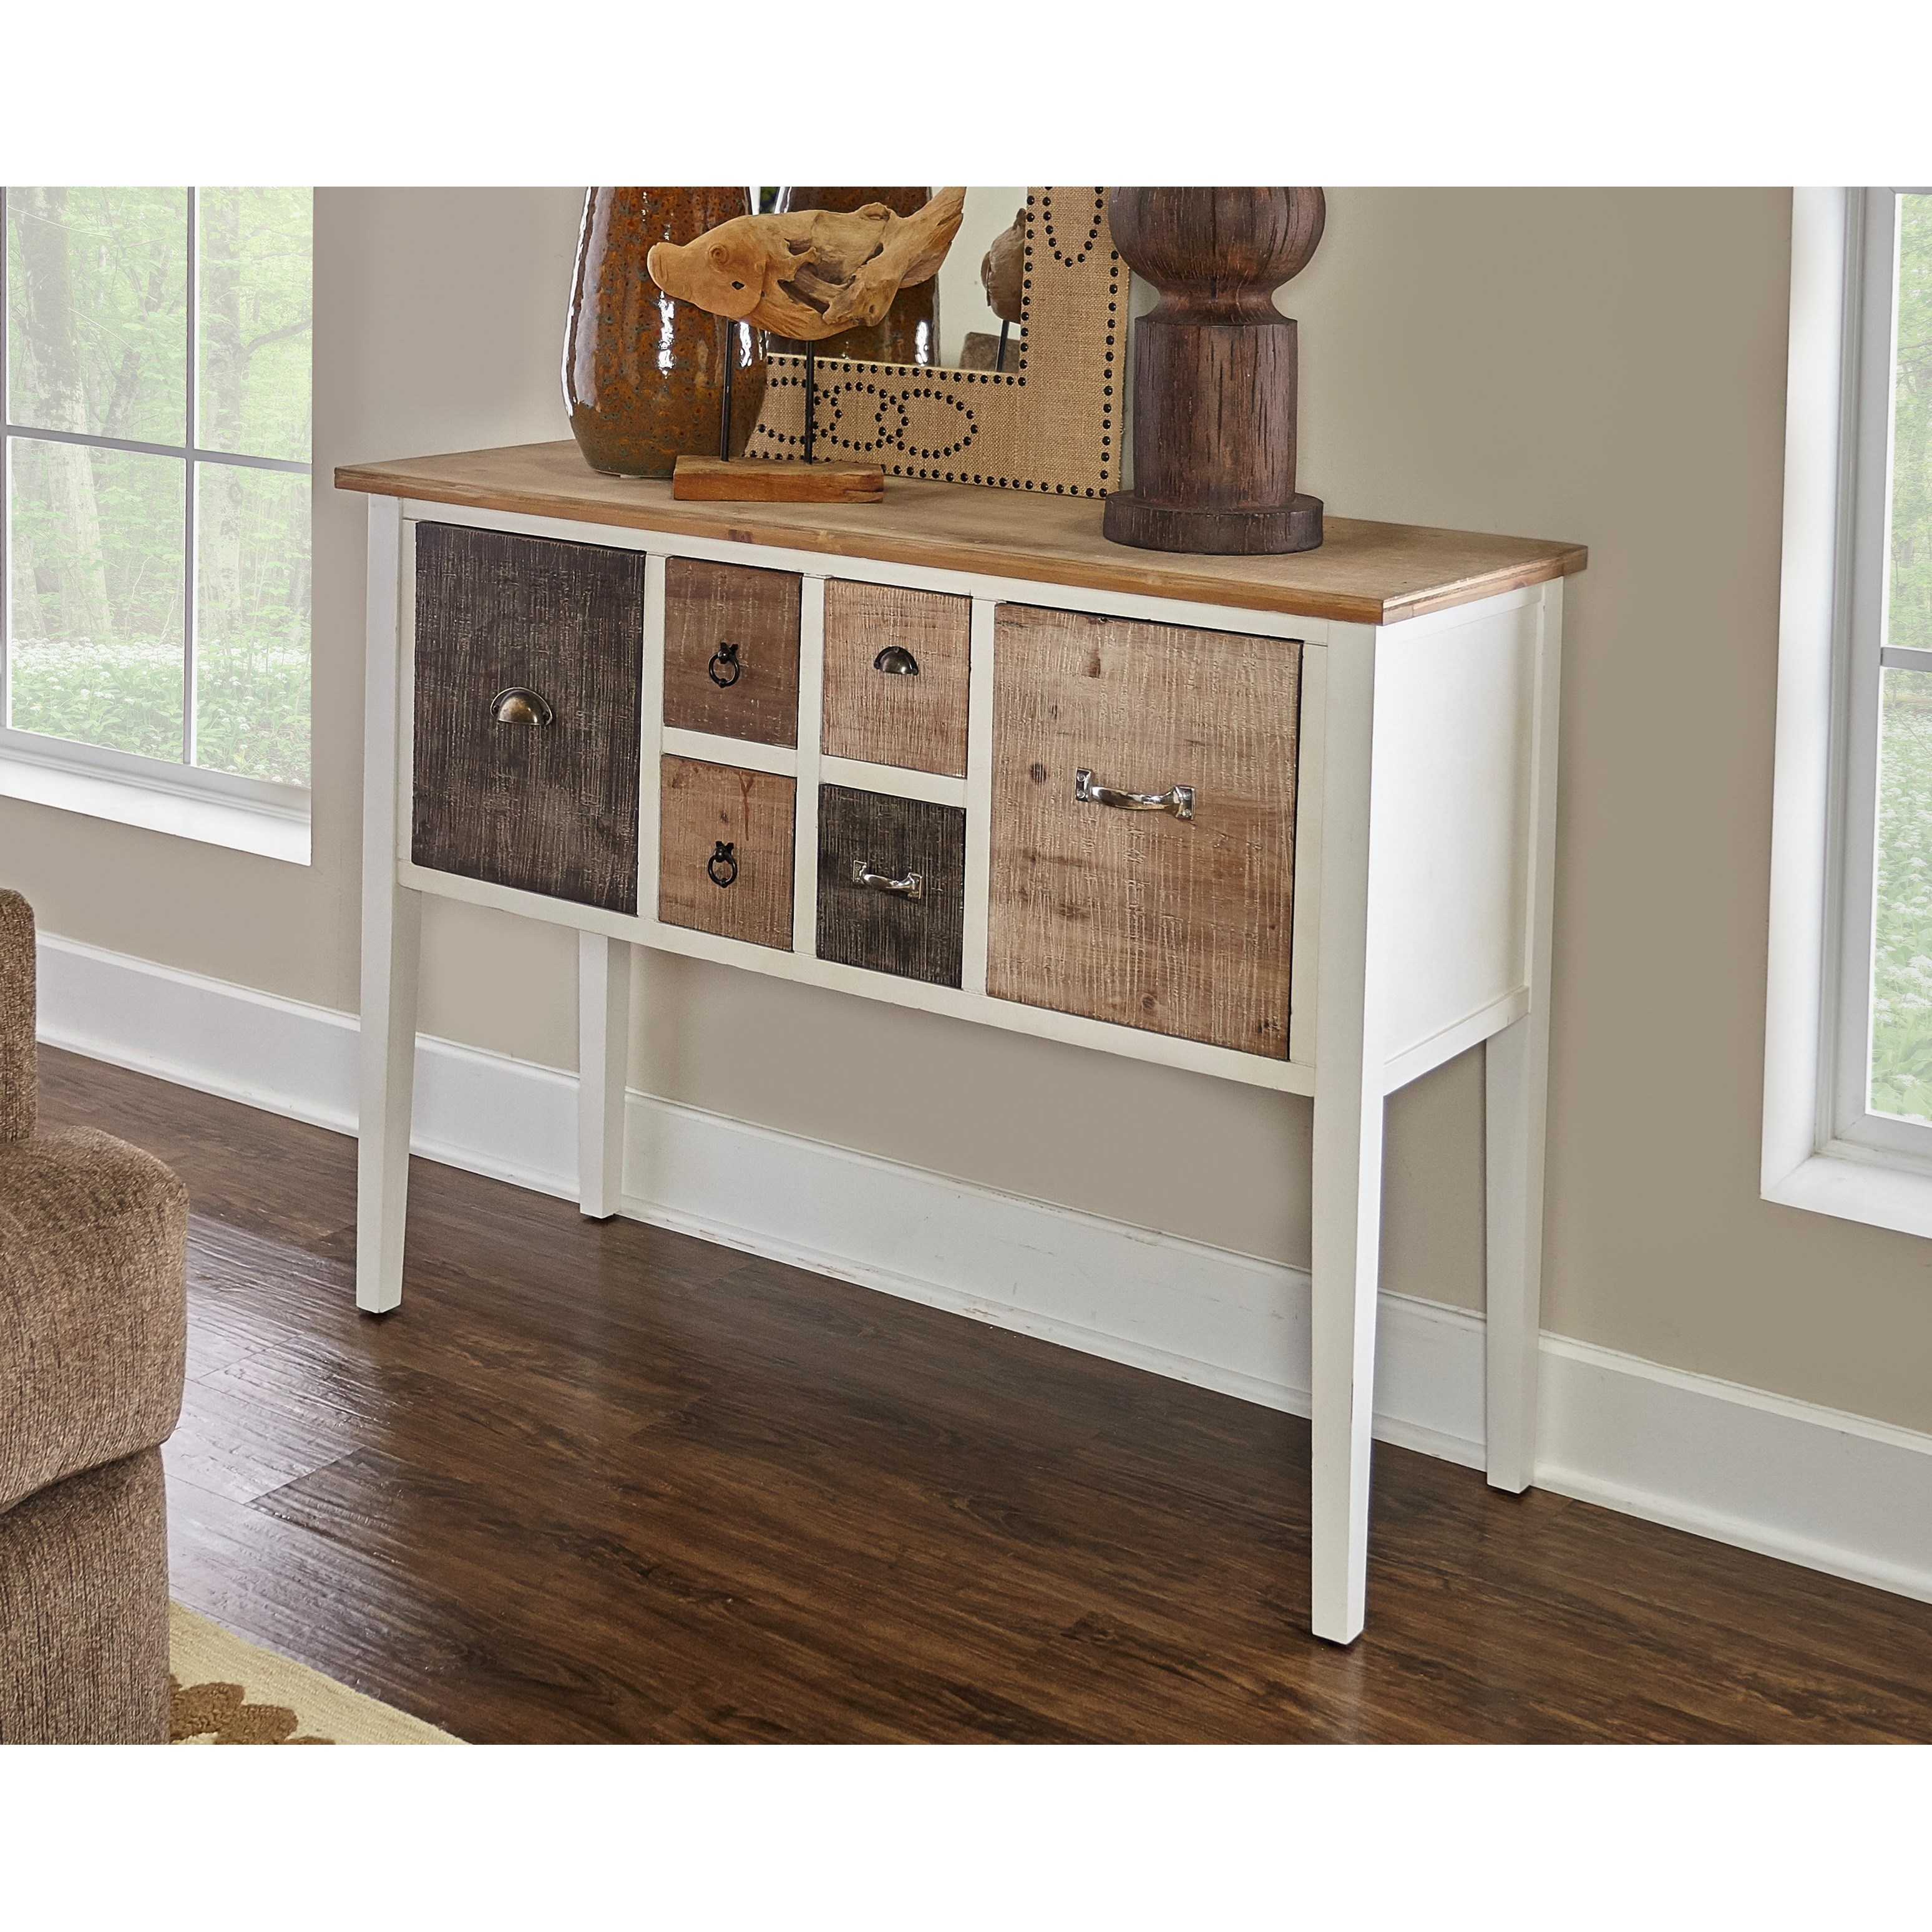 Powell Accent Furniture Brighton Console - Item Number: 15A8136C